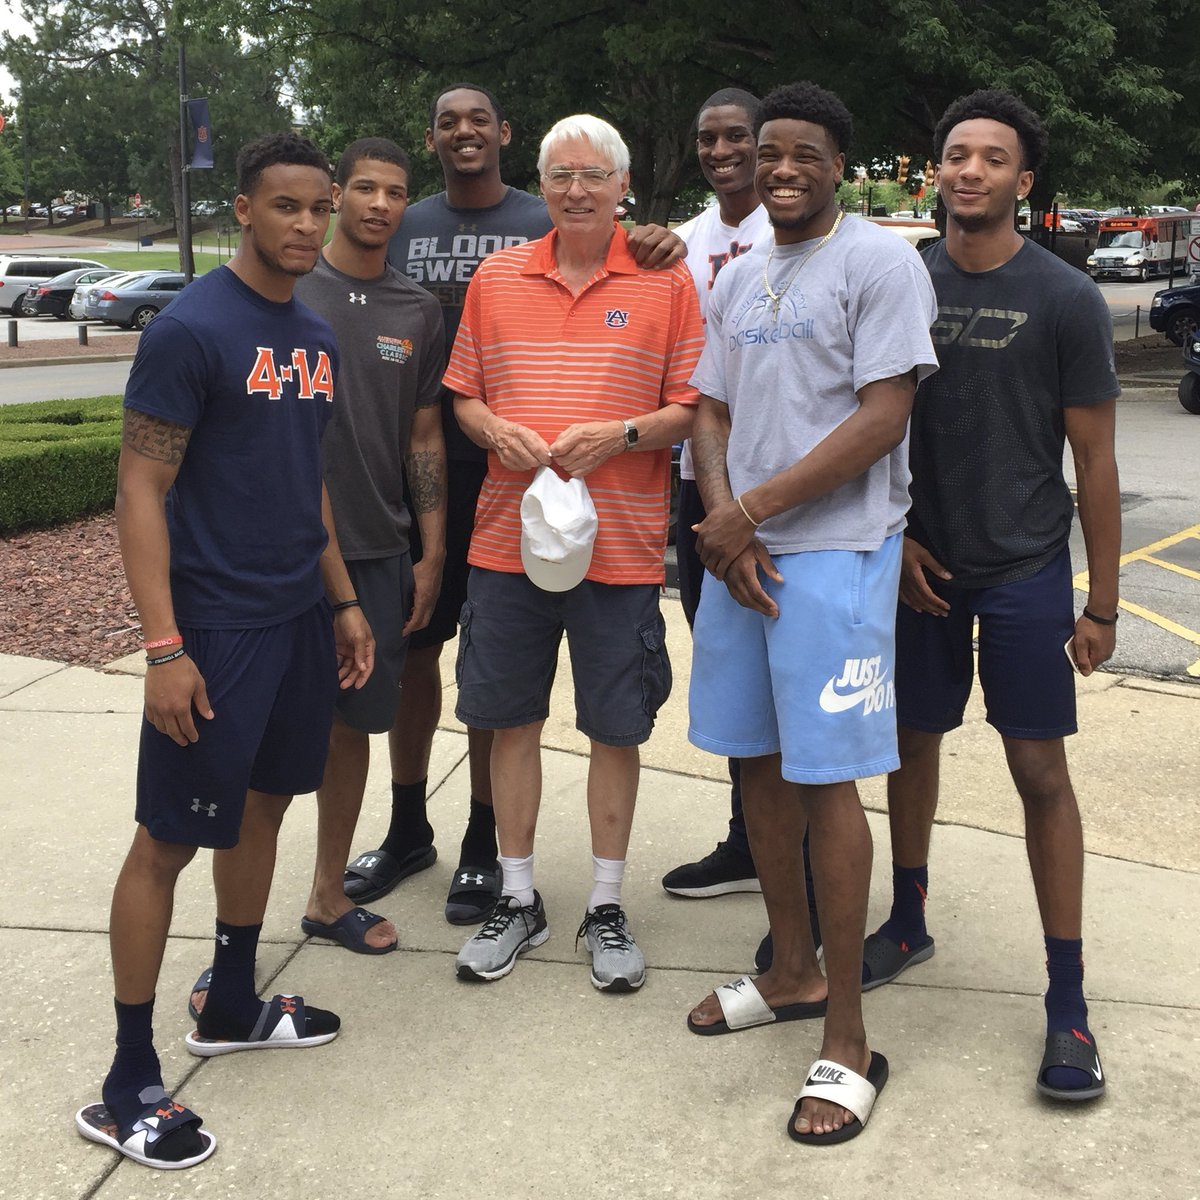 Dad went out to welcome home @AuburnBaseball and ran into these guys—love how @AuburnTigers athletes support each other! Can't wait to see @__Austinwiley50 @_Ticket52 @Bwb_2 @horace_spencer0 @malik_ihoop @_jamaljohnson @coachbrucepearl and the rest of @AuburnMBB this fall! #WDE<br>http://pic.twitter.com/HoboQtSEmT